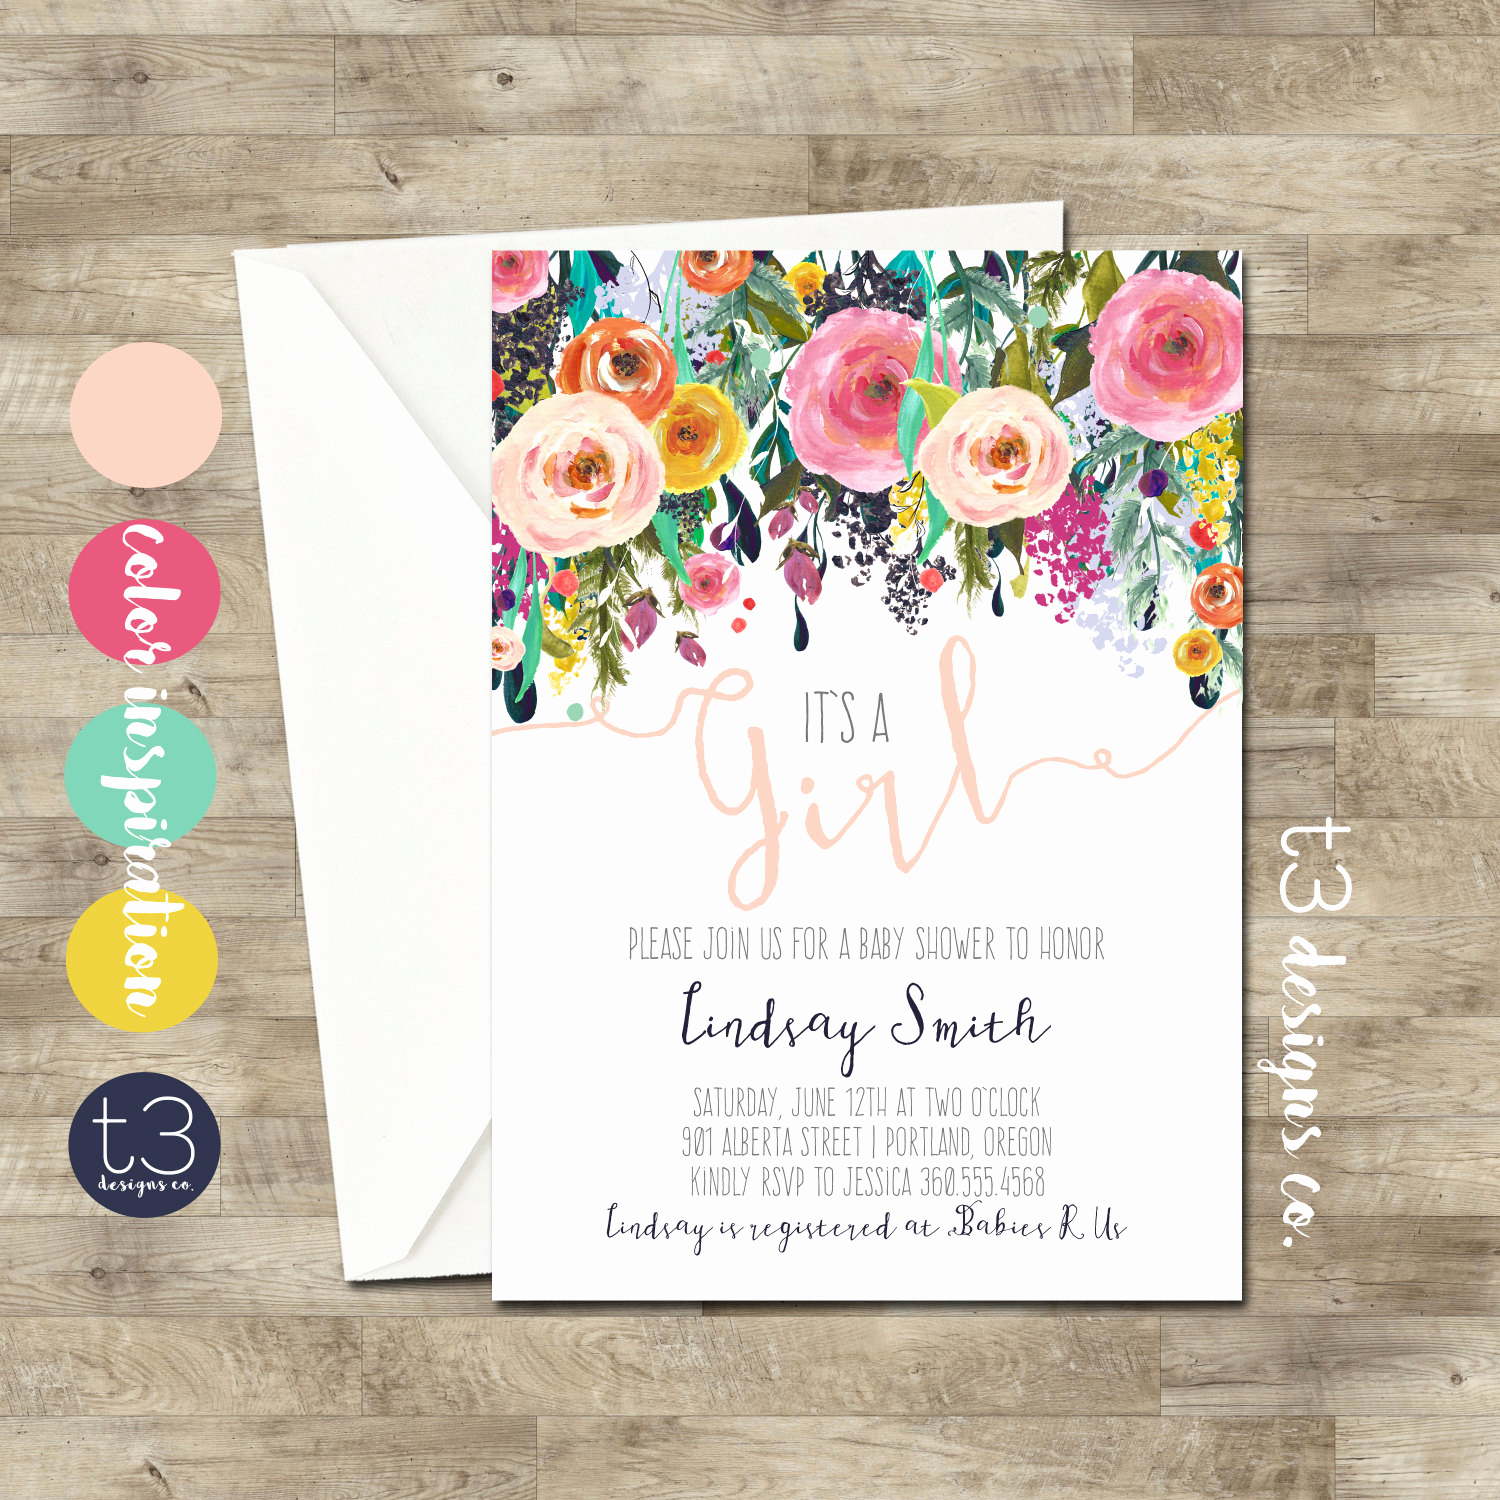 Girl Baby Shower Invitation Templates Awesome Whimsical Girl Baby Shower Invitation Girl Baby Shower